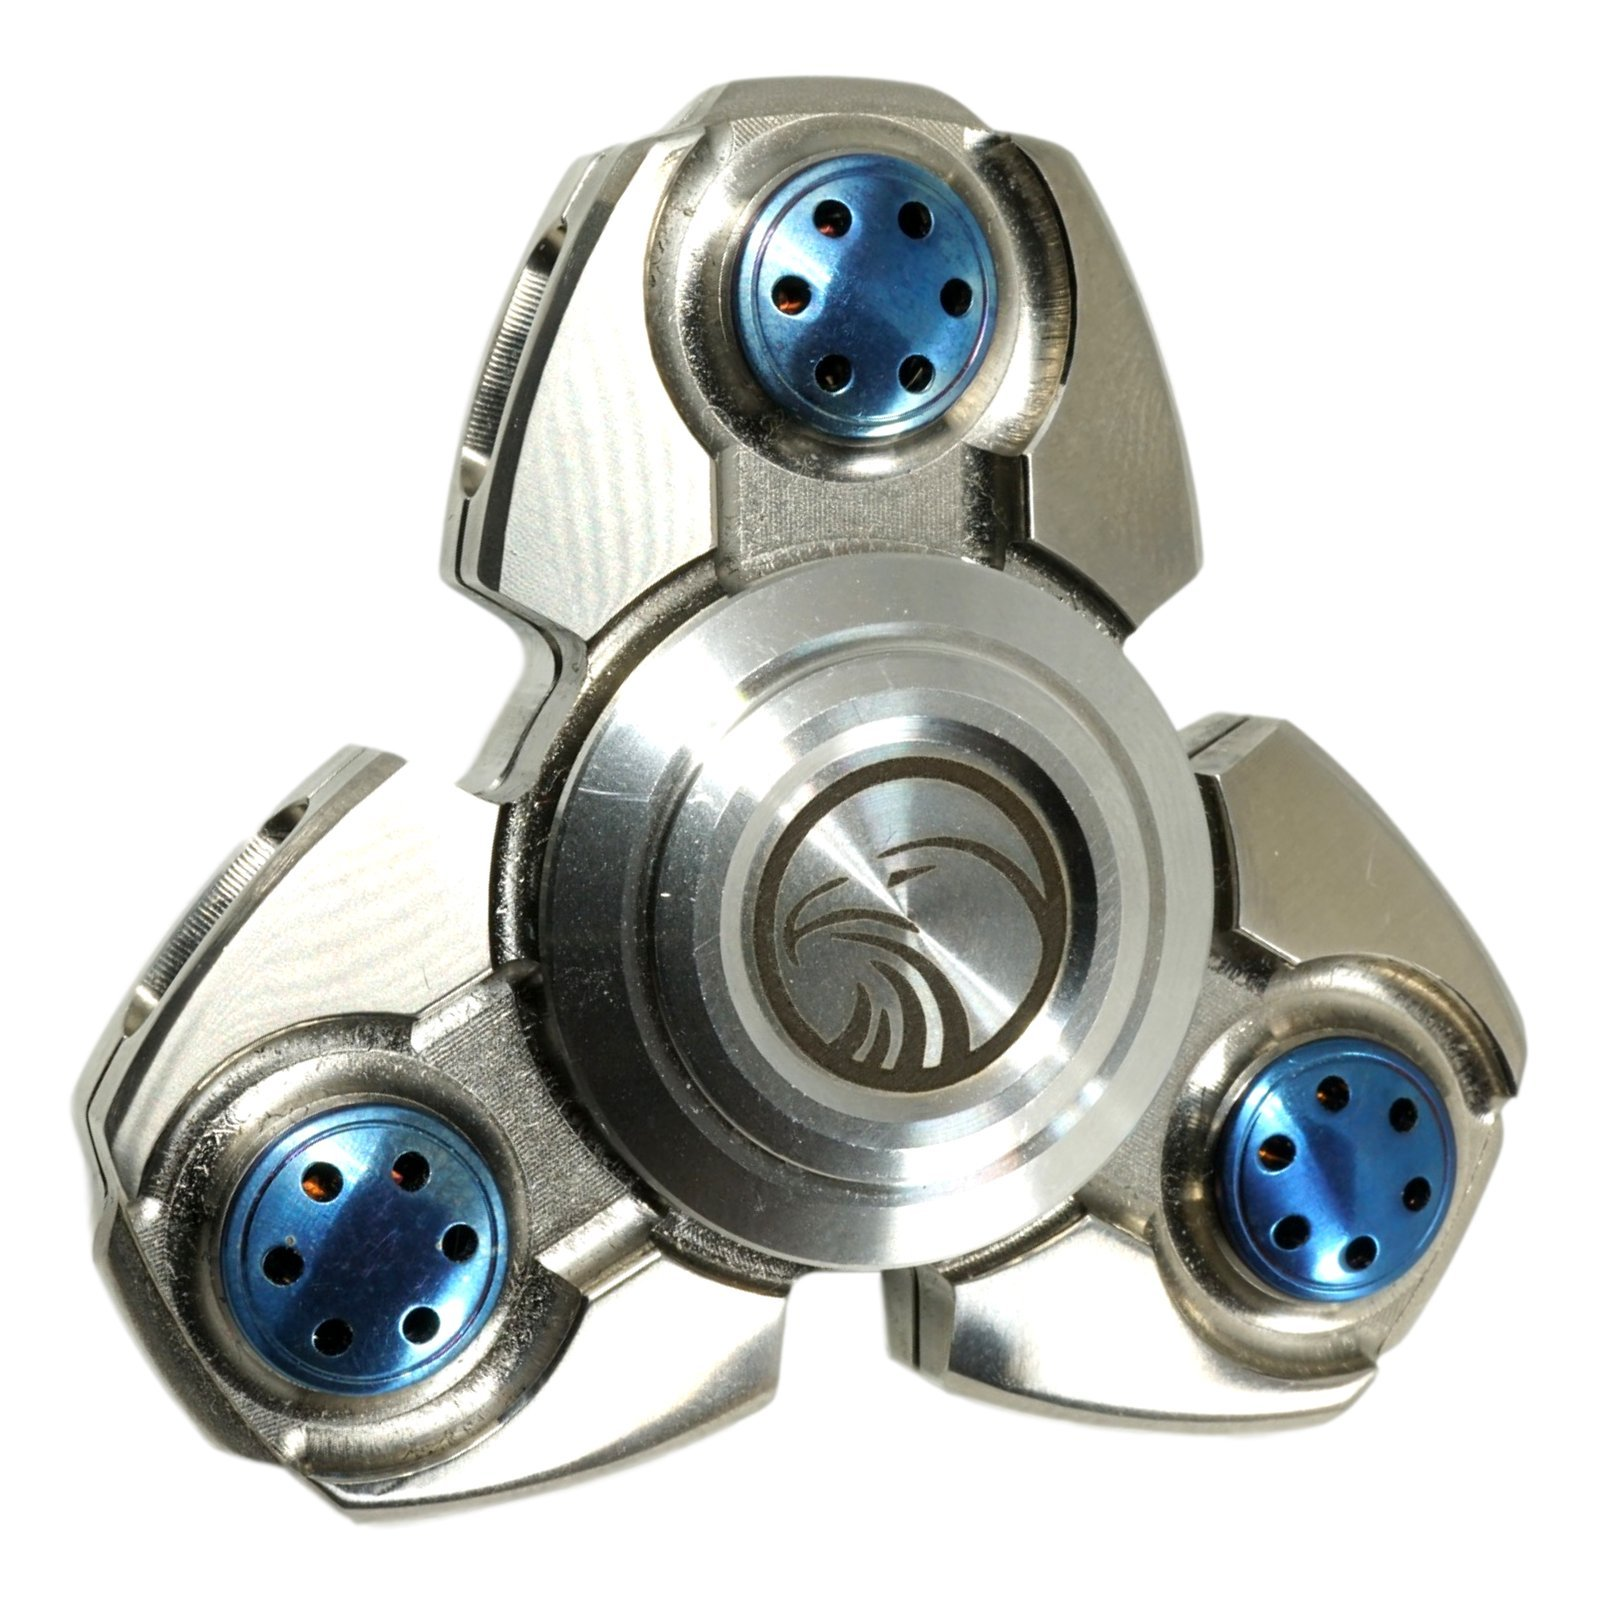 Valtcan Titanium Fidget Spinner Gyroscope by Valtcan (Image #6)